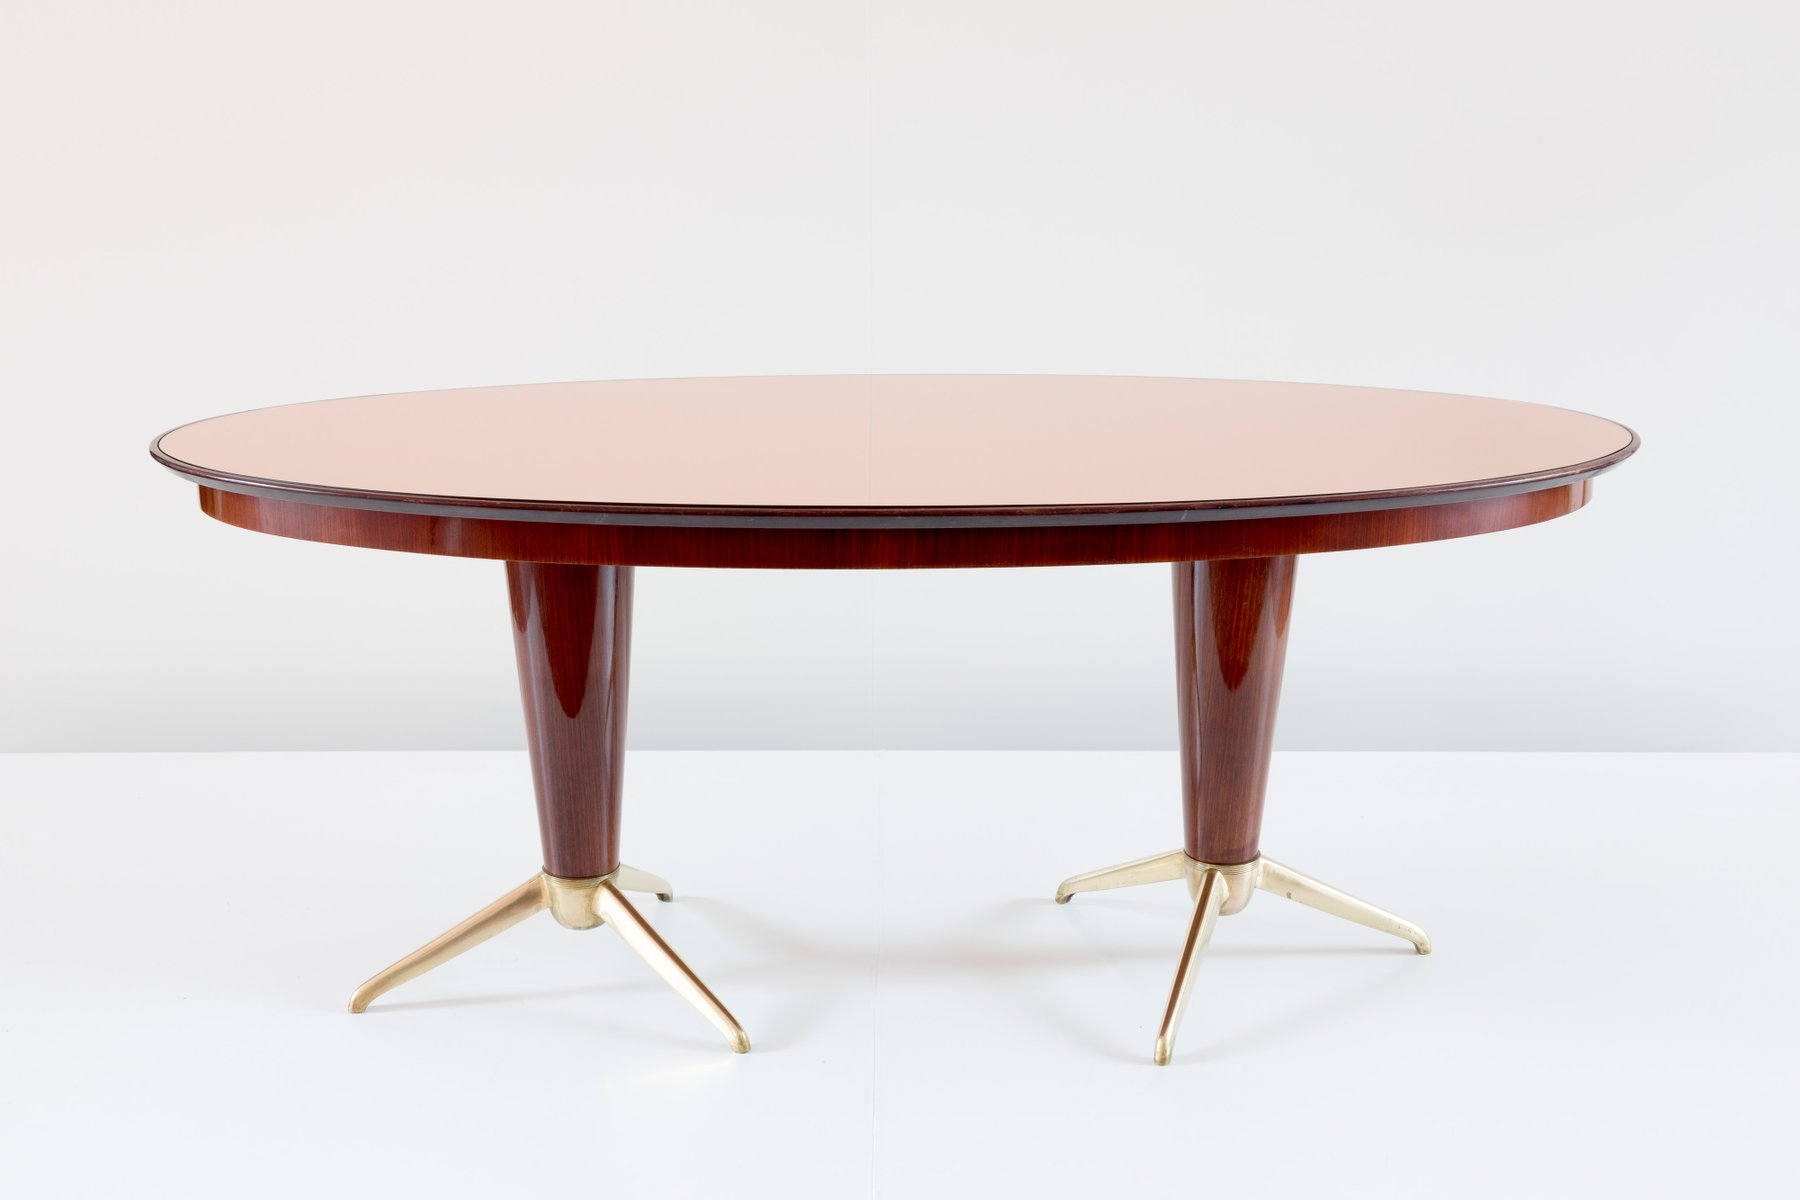 Italian mahogany oval dining table 1952 for sale at pamono for Oval dining table